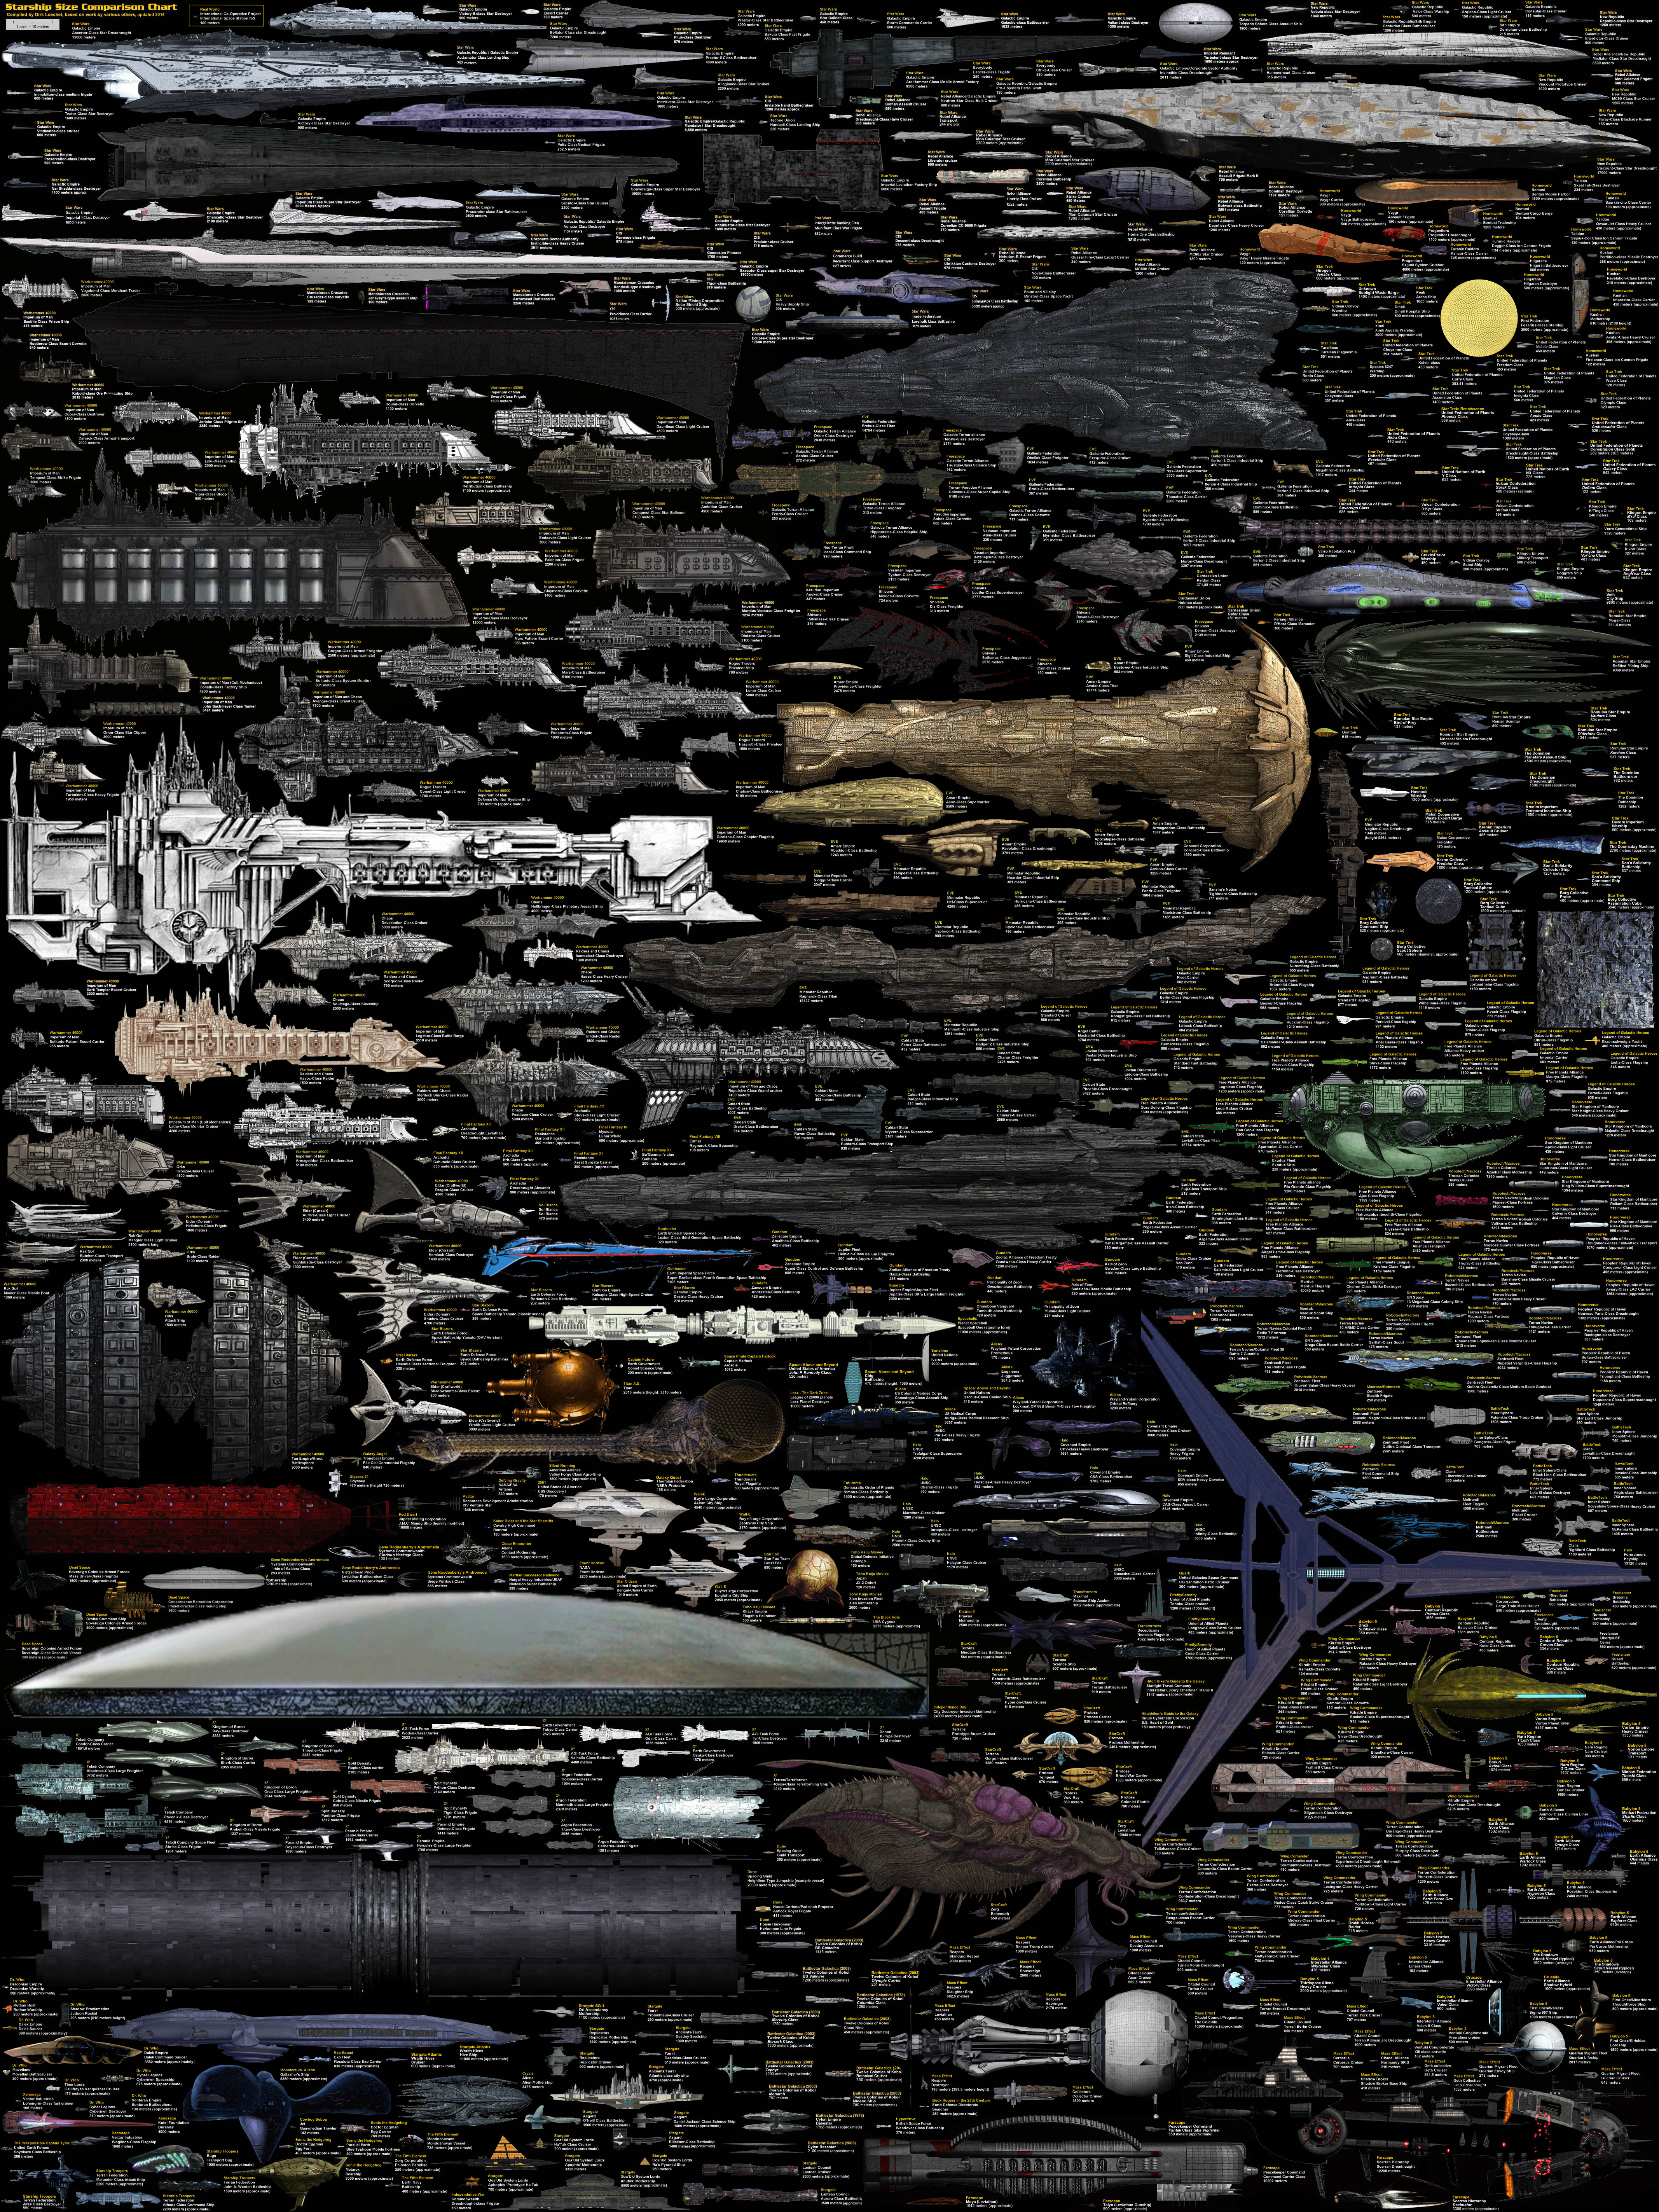 size_comparison___science_fiction_spaceships_by_dirkloechel-d6lfgdf